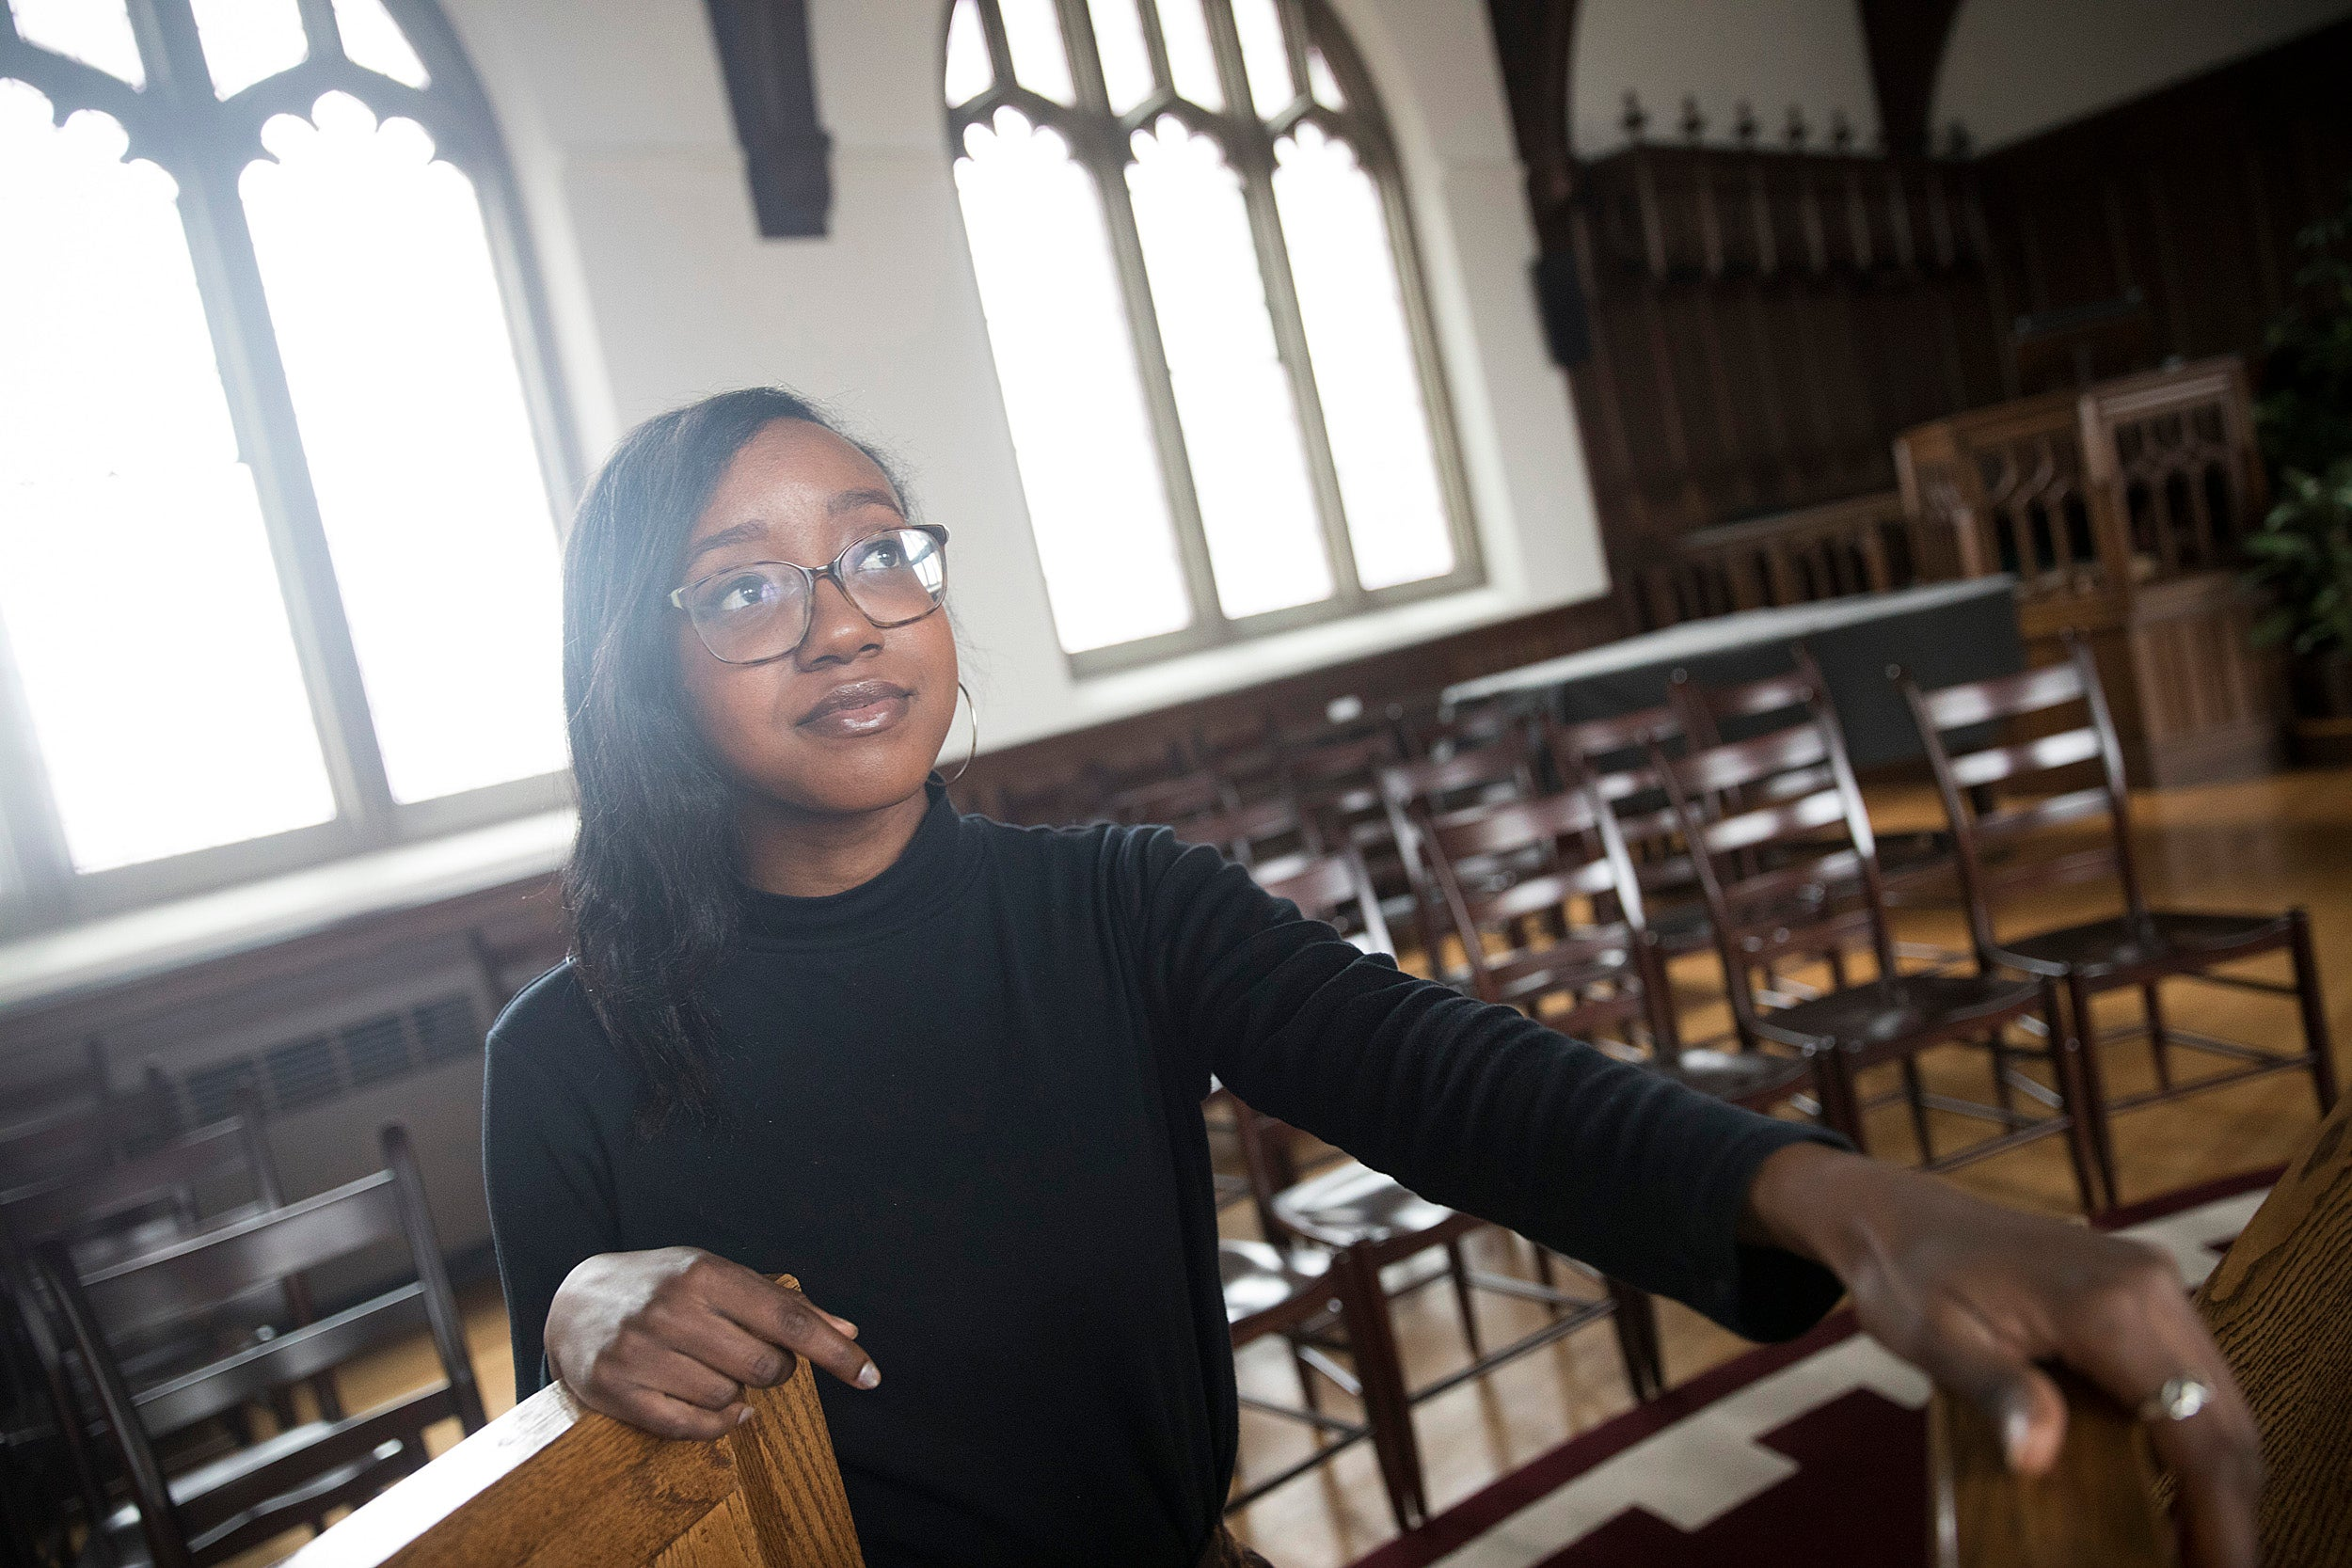 Nicole Powell originally planned to go into journalism, but an internship with the Children's Defense Fund Freedom Schools showed her new ways to effect change and brought her to Harvard Divinity School.